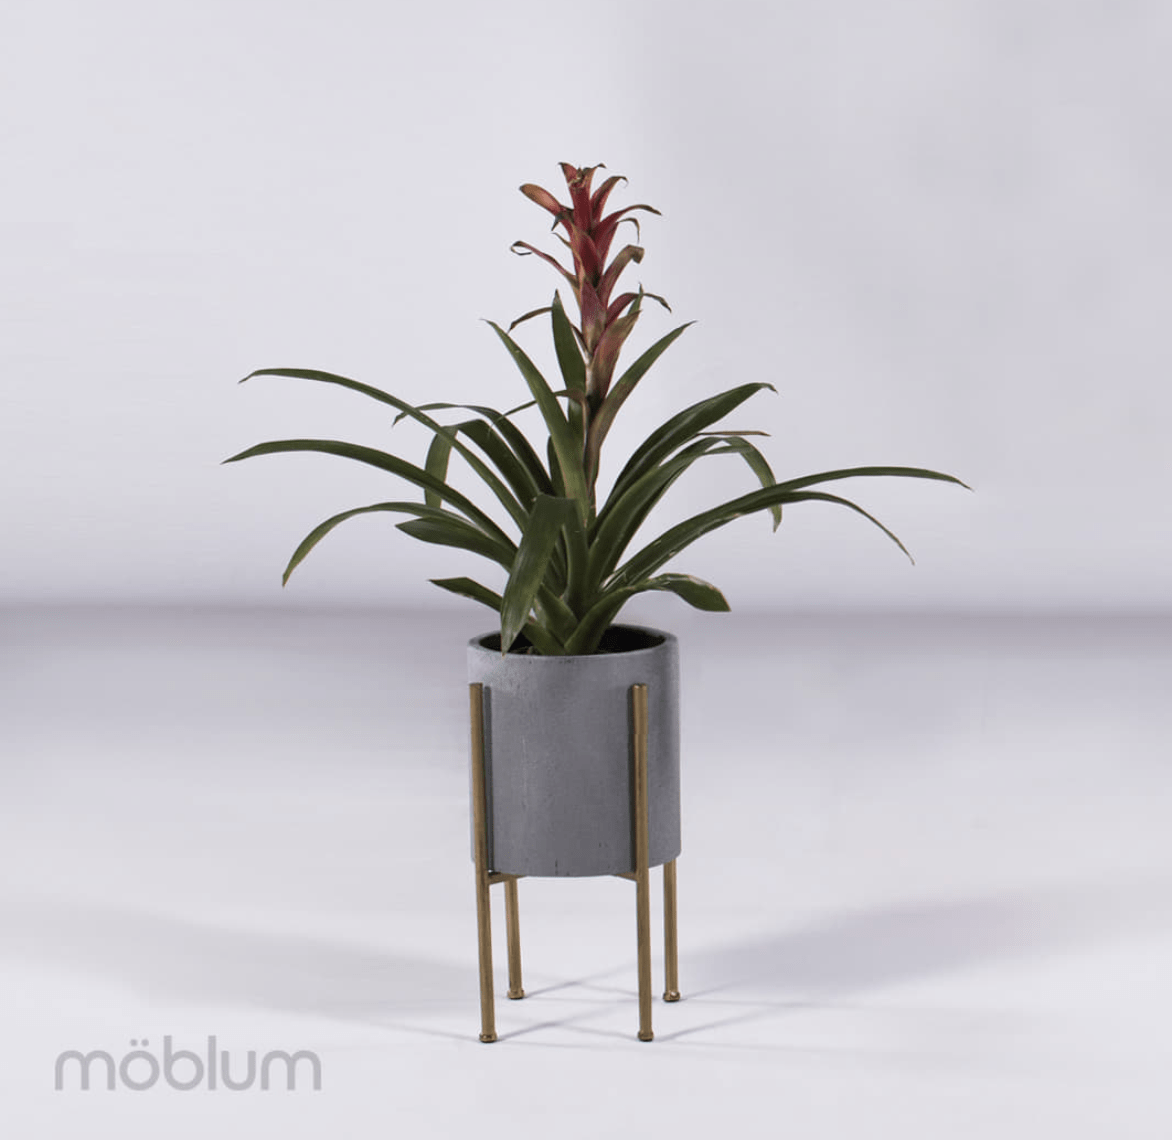 moblum_Tendencias-2019-en-decoracion-de-interiores(4)